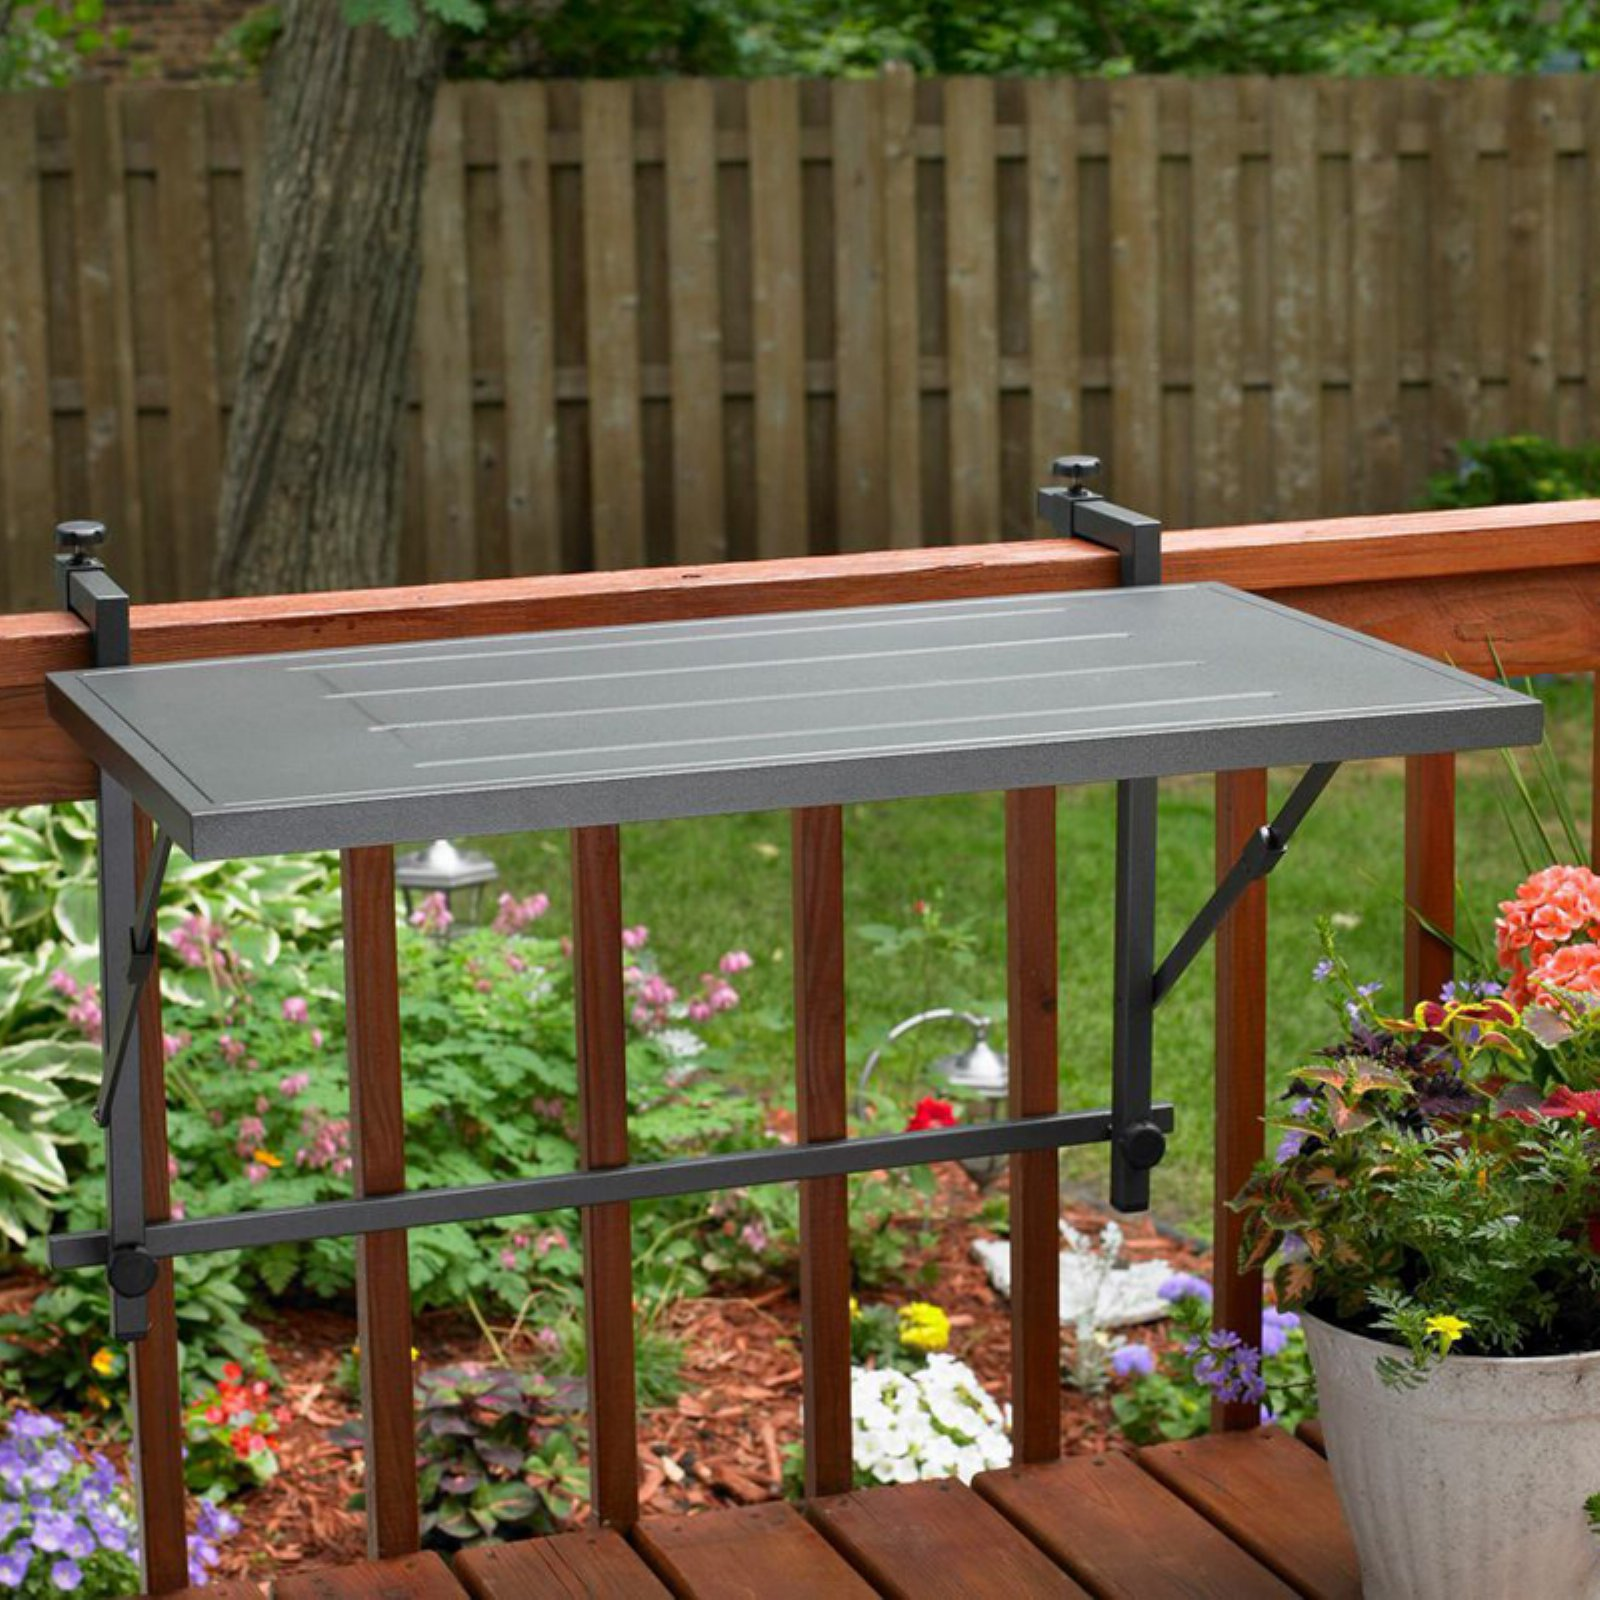 Outdoor GreatRoom Grill Shelf with Deck Rail Mount